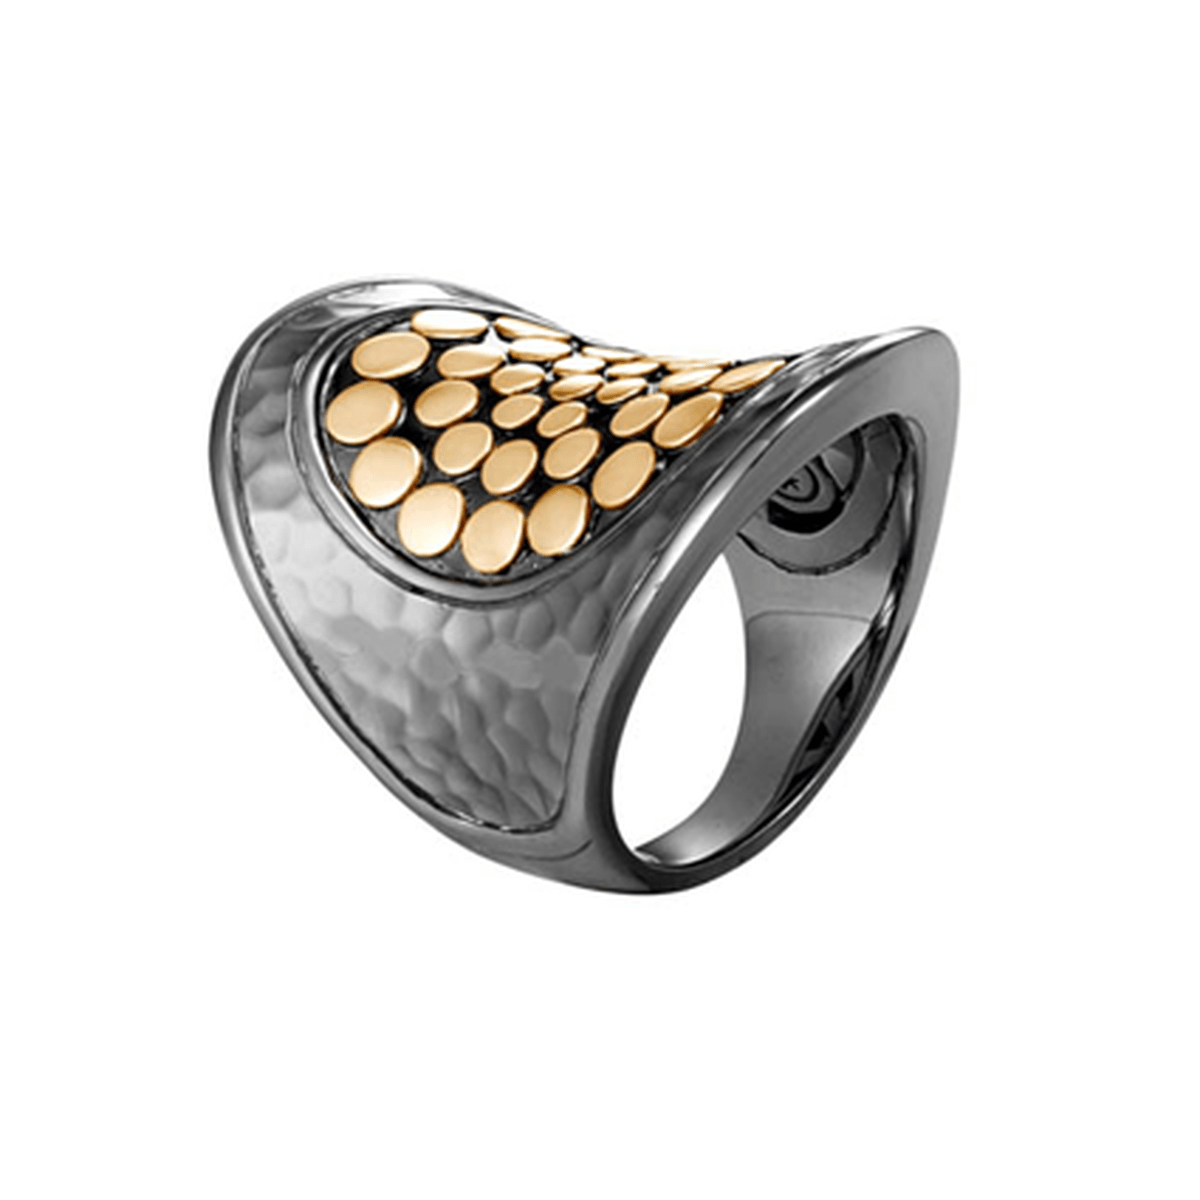 Dot Saddle Ring in Blackened Hammered Silver and 18K Gold - RZ30007BRD-John Hardy-Renee Taylor Gallery